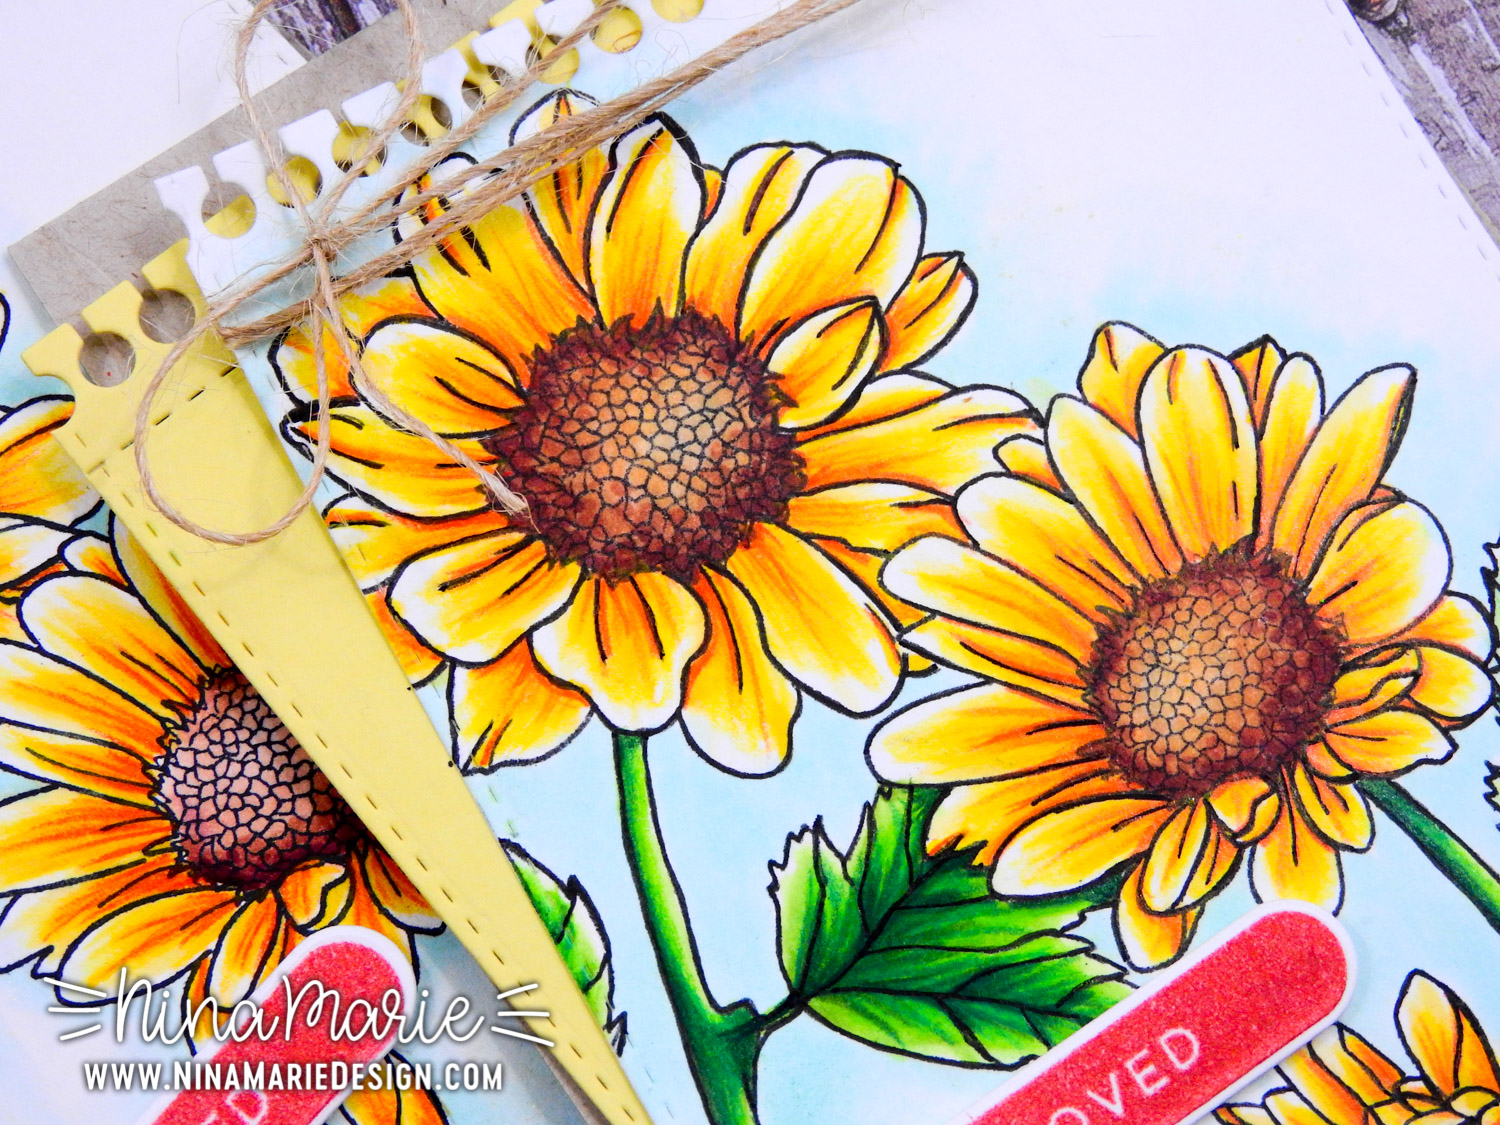 ALTENEW MARKERS + COLORED PENCILS + ALTENEW MARKERS RELEASE HOP + GIVEAWAY | Nina-Marie Design